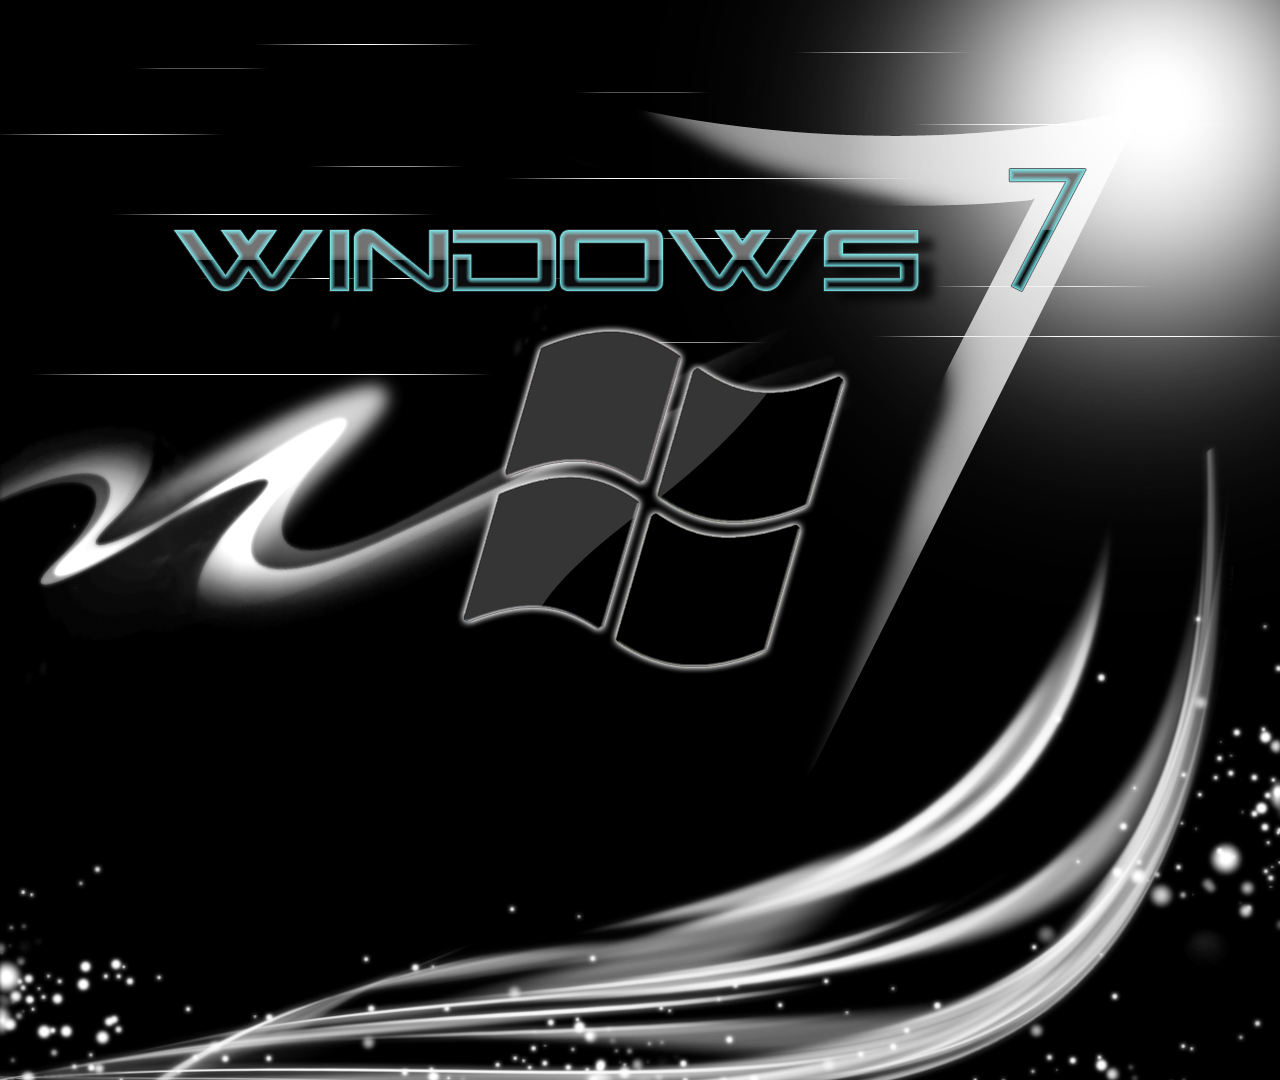 windows 7 wallpaper black lifestylebay windows 7 hd wallpapers ahd 1280x1080